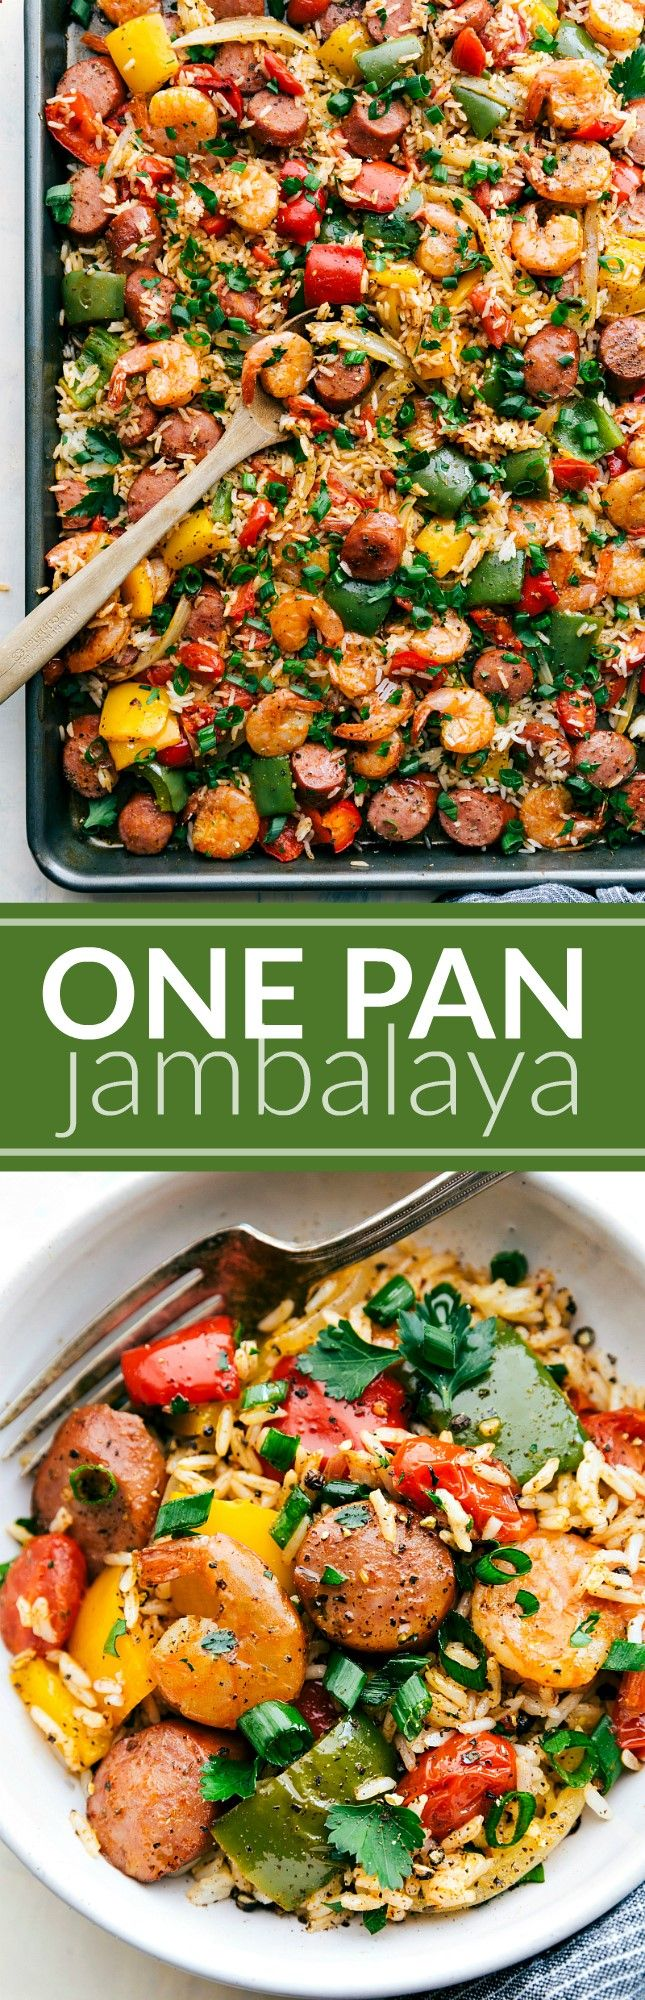 ONE PAN JAMBALAYA! Sausage, shrimp, seasoned veggies, AND rice all cooked together on ONE PAN! Easy 30-minute dinner via chelseasmessyapro...